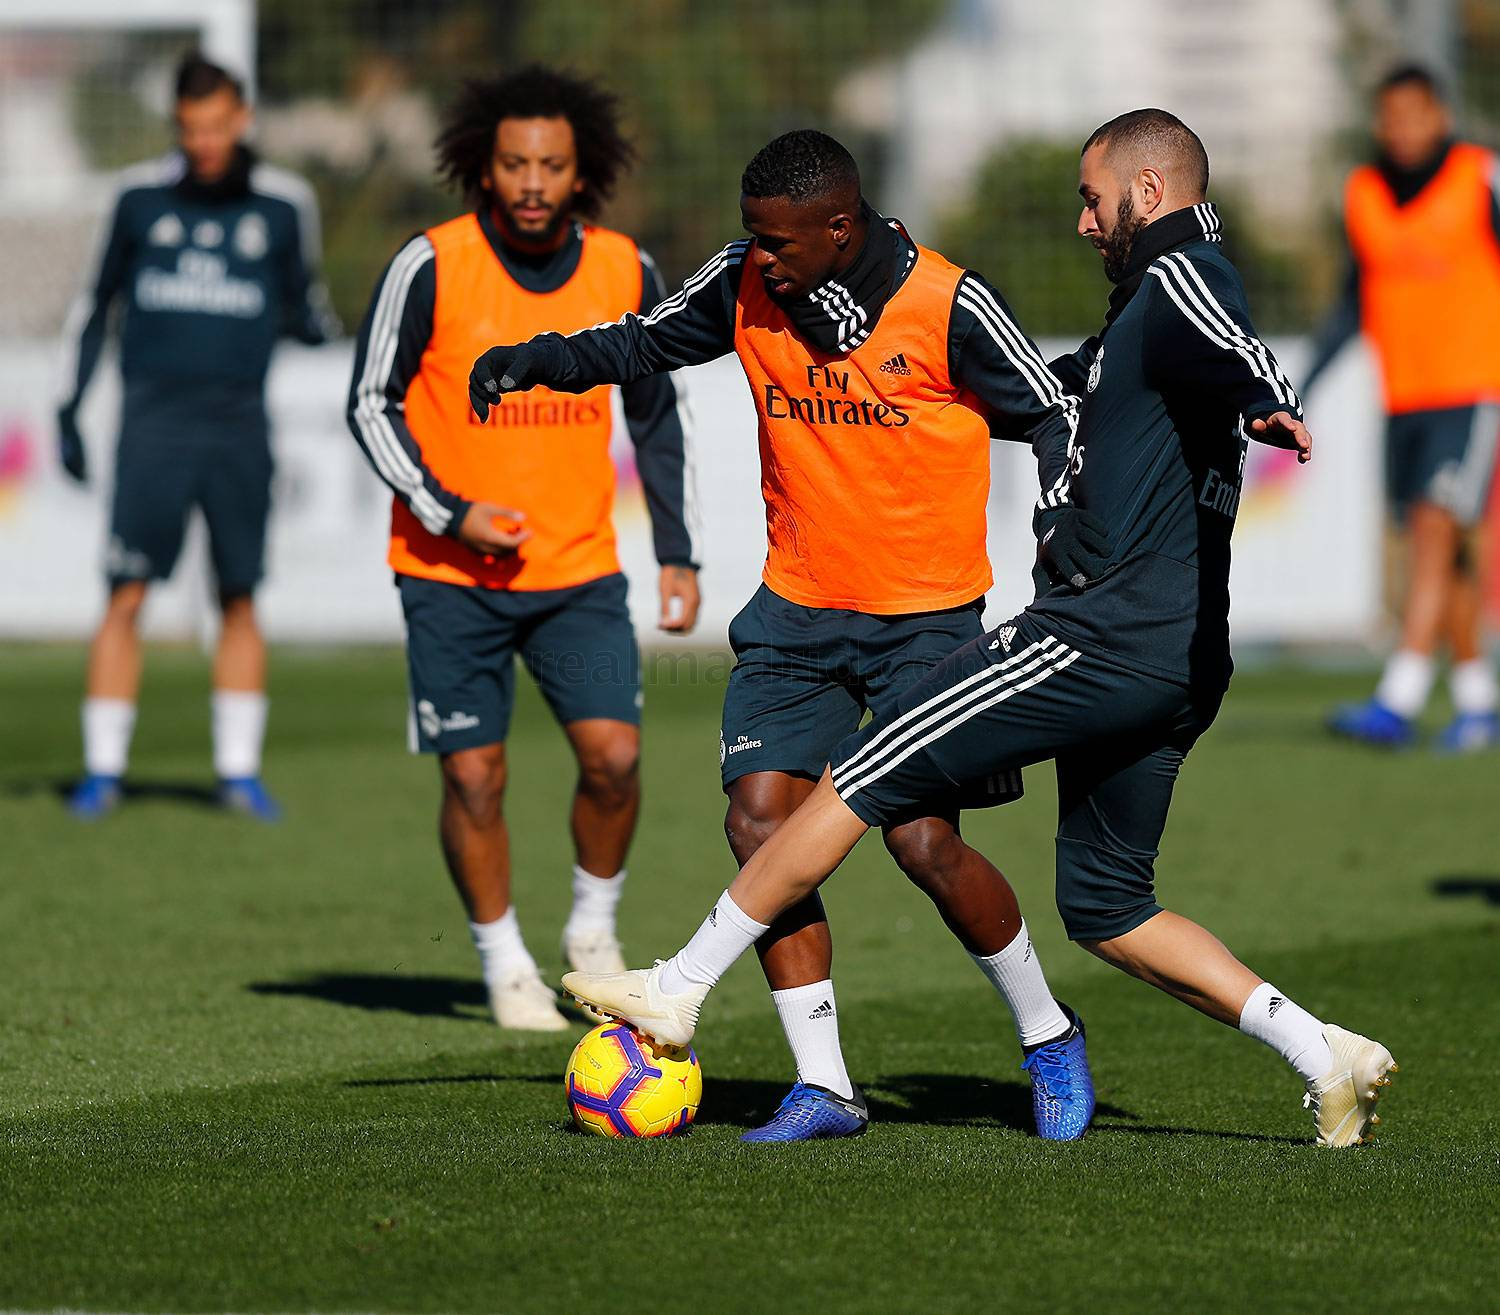 Real Madrid - Entrenamiento del Real Madrid - 09-11-2018